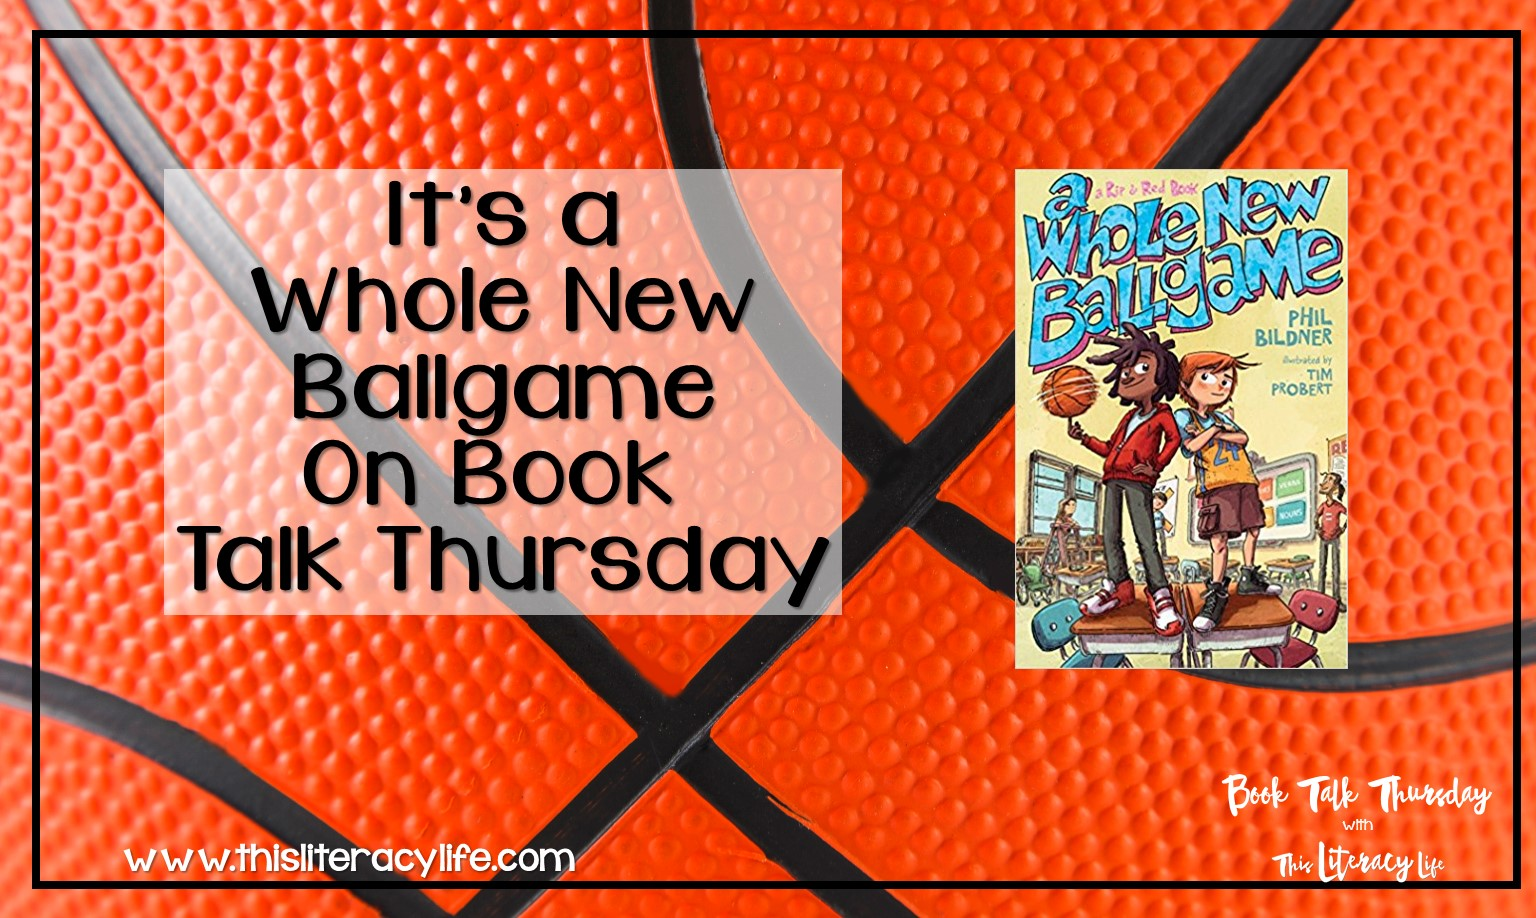 What happens when your whole world changes in your last year of elementary school? You learn to deal with it! And that's just what Rip and Red do in this fun book that teaches some great lessons.